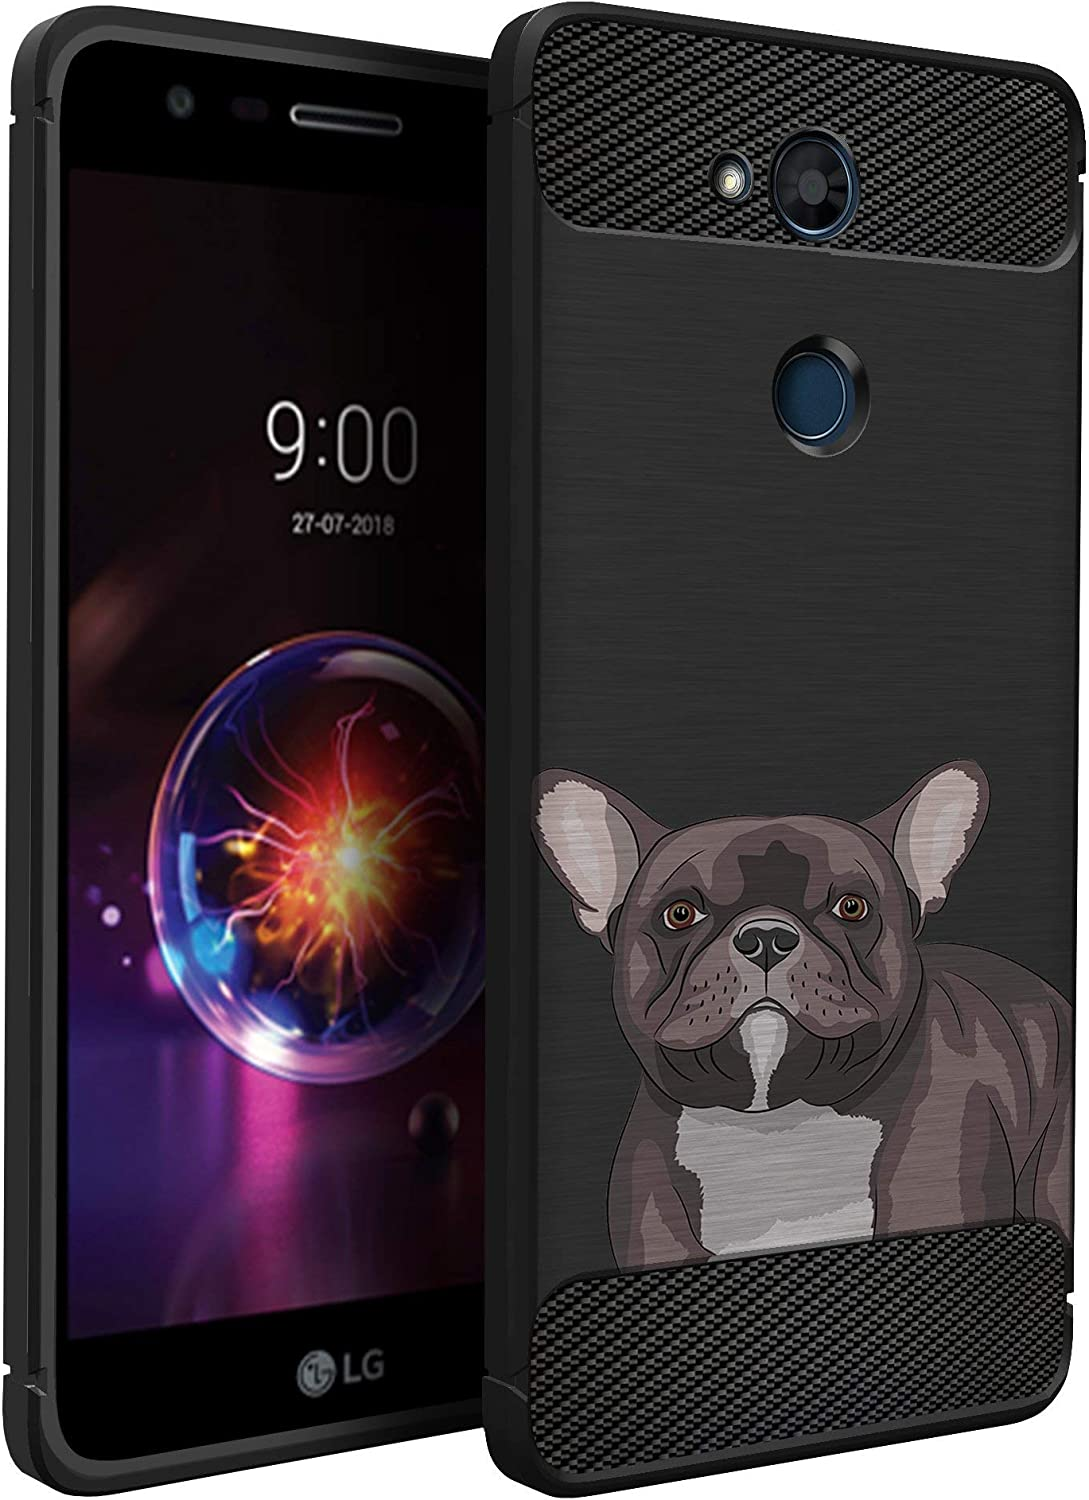 CasesOnDeck Dog Design Case Compatible with LG X Power 3/ LG X Charge 2/ X Power 2/ LG Fiesta 2 LTE/LG X5 (2018) - Slim TPU Flexible Matte Carbon Fiber Texture Cover (Boston Terrier)